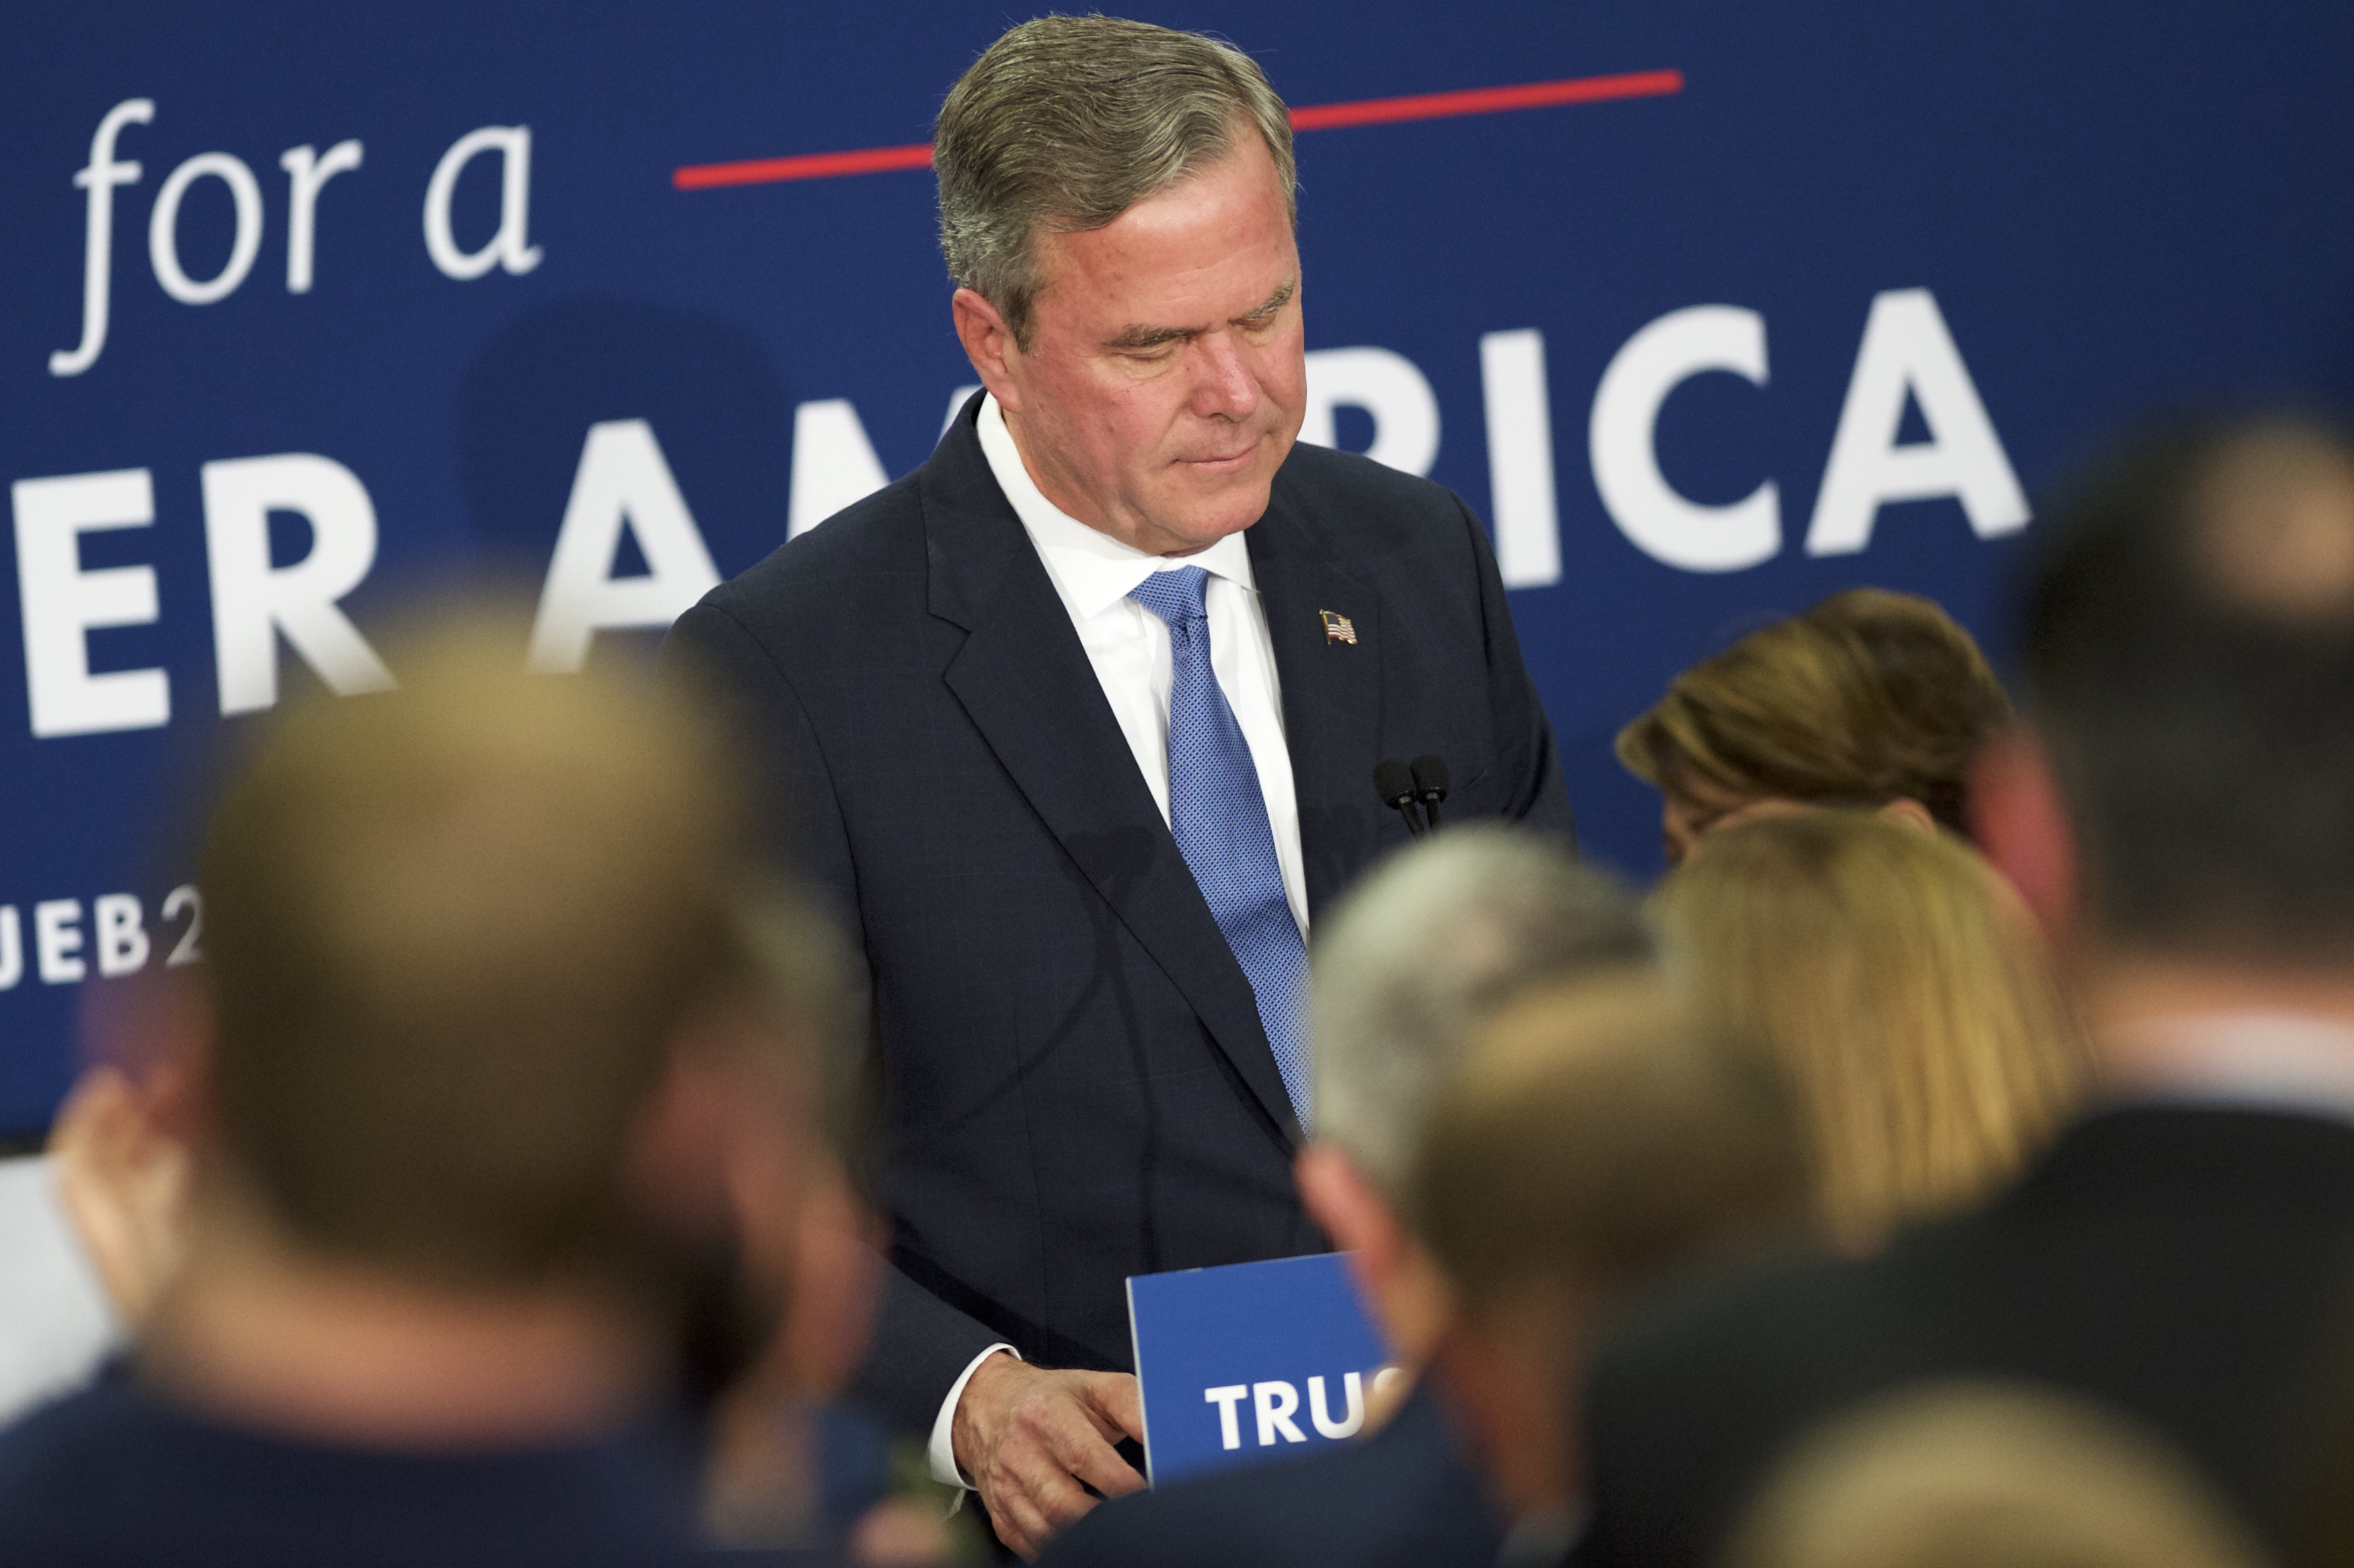 Jeb Bush reacts as he announces the suspension of his presidential campaign in Columbia, SC on Feb. 20, 2016.